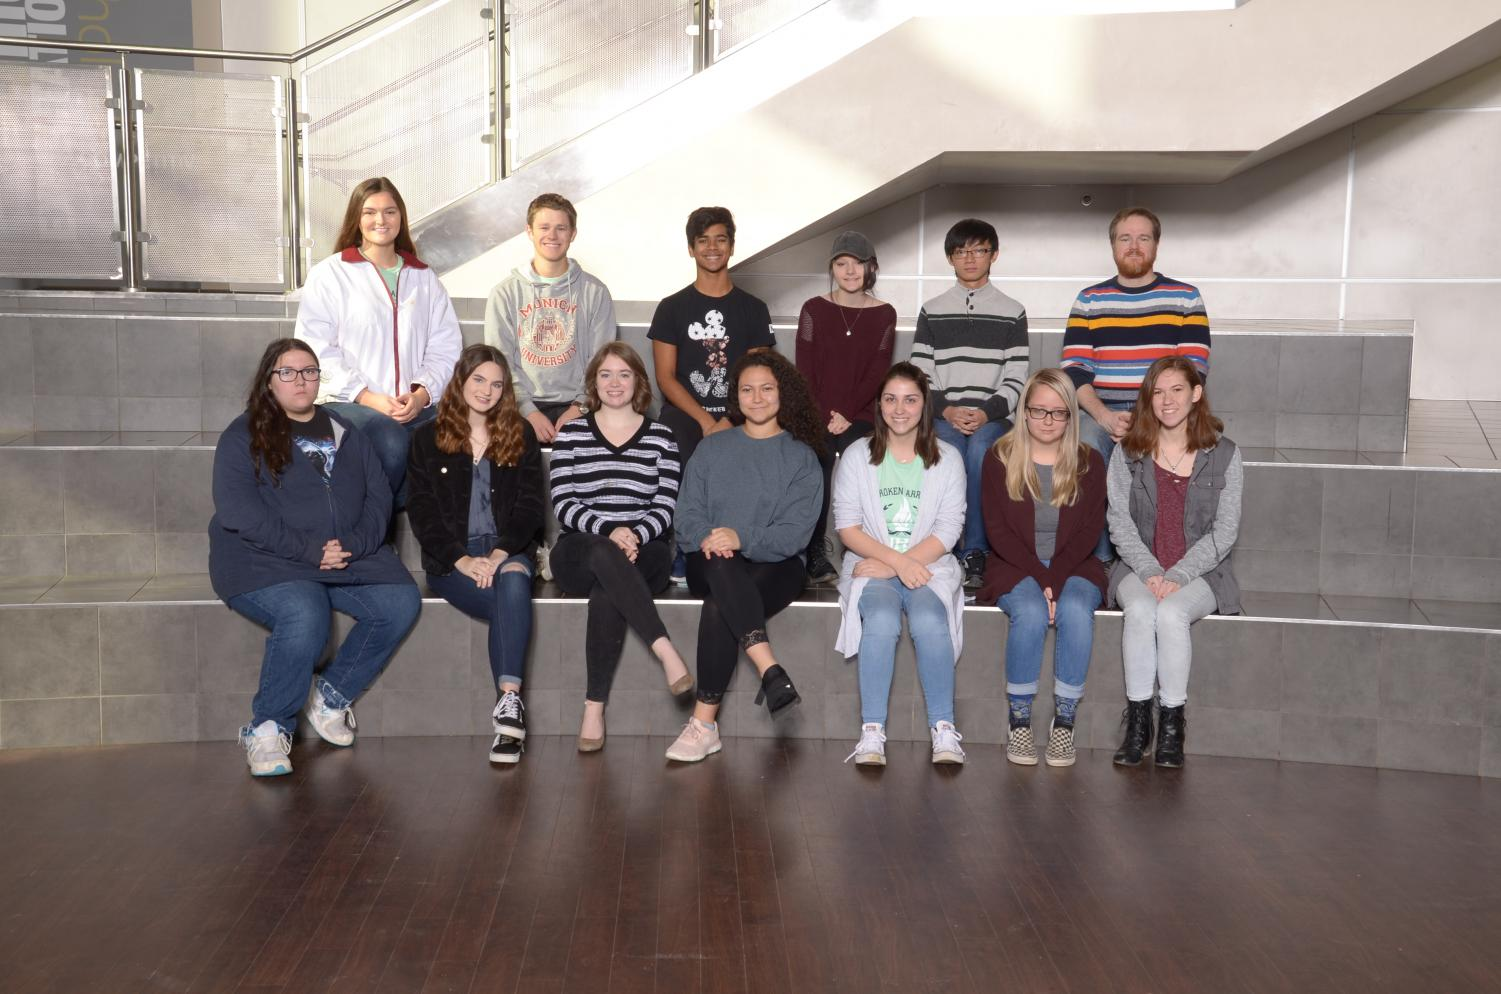 Pen-to-Paper club allows students to express themselves through creative writing